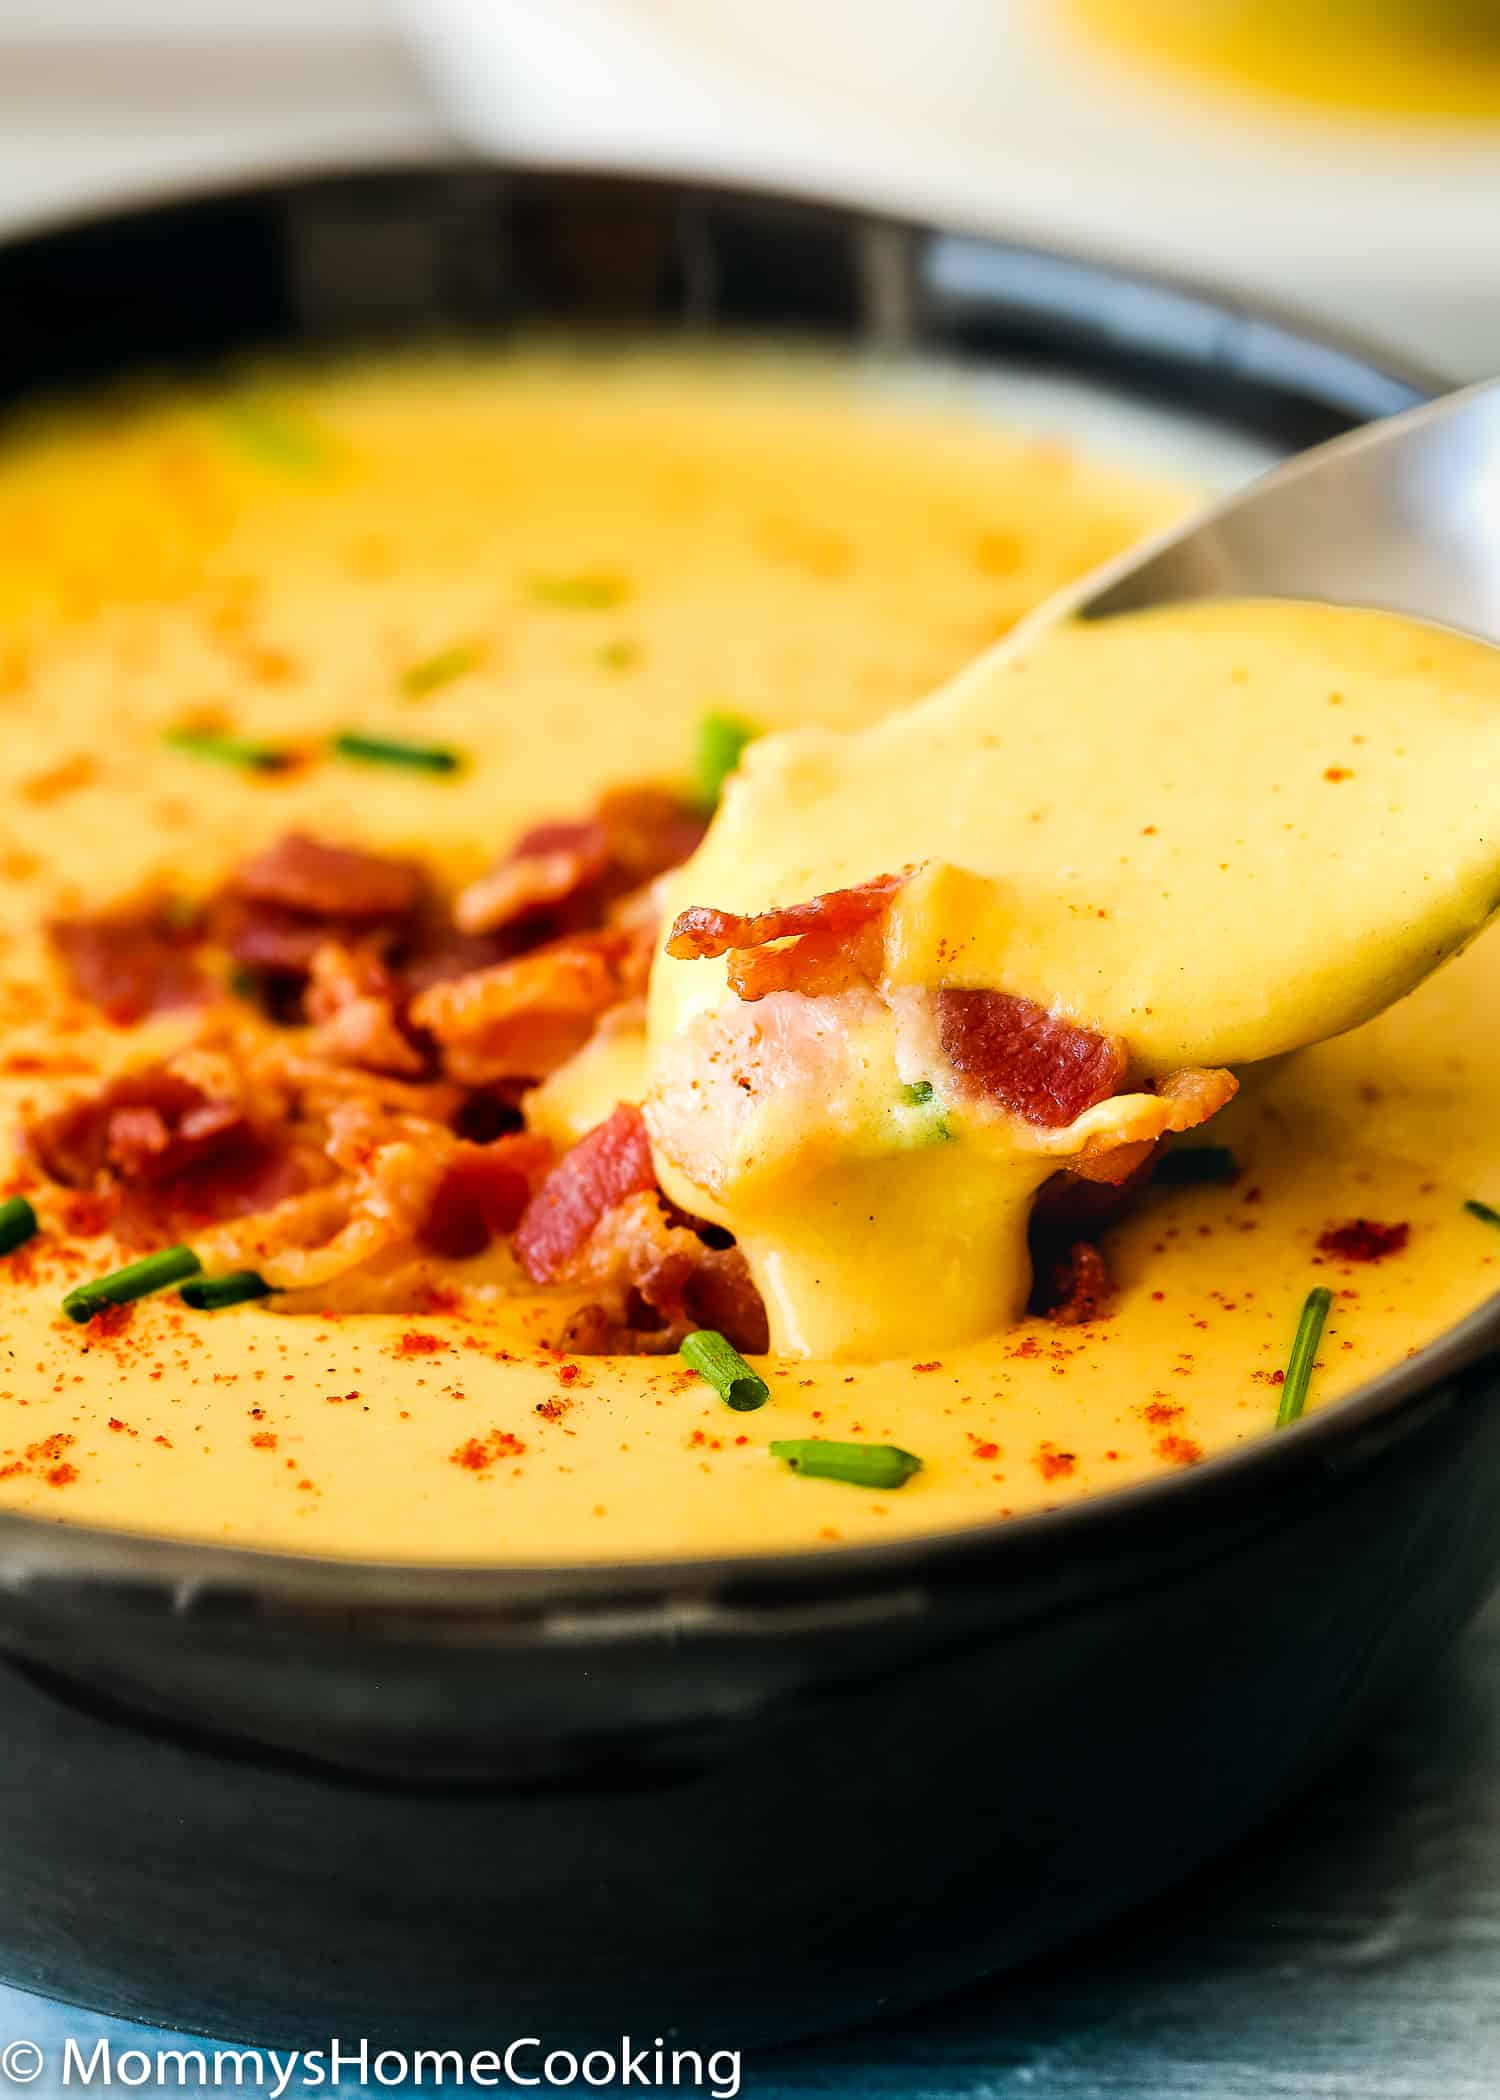 This Instant Pot Smoky Cheese and Potato Soup recipe is the perfect way to savor cheese with a spoon. This delicious silky-smooth pureed soup is made with tons of smoked cheese, potatoes and a combination of spices that makes it totally irresistible. https://mommyshomecooking.com